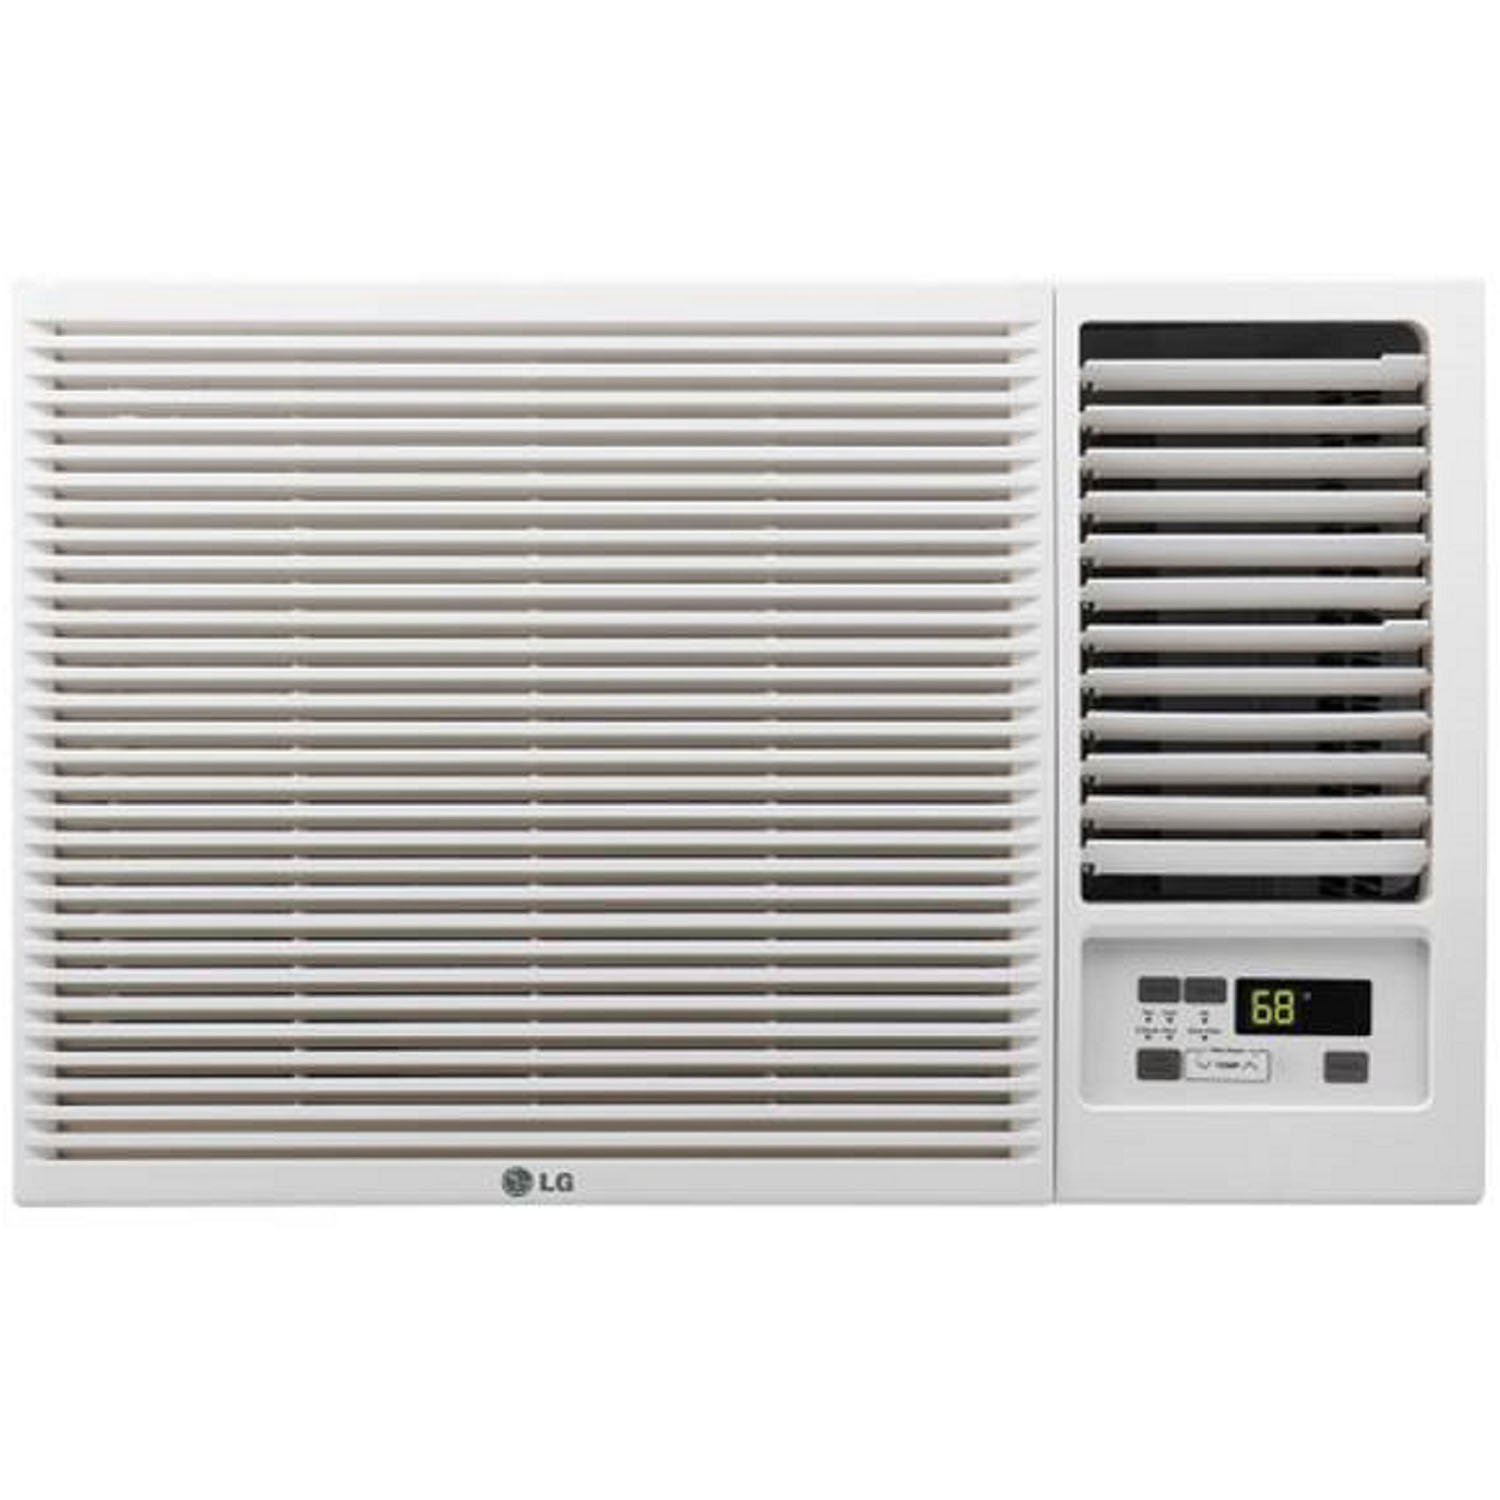 LG 7,500 115V Window-Mounted 3,850 BTU Supplemental Heat Function Air Conditioner, 7500, White by LG